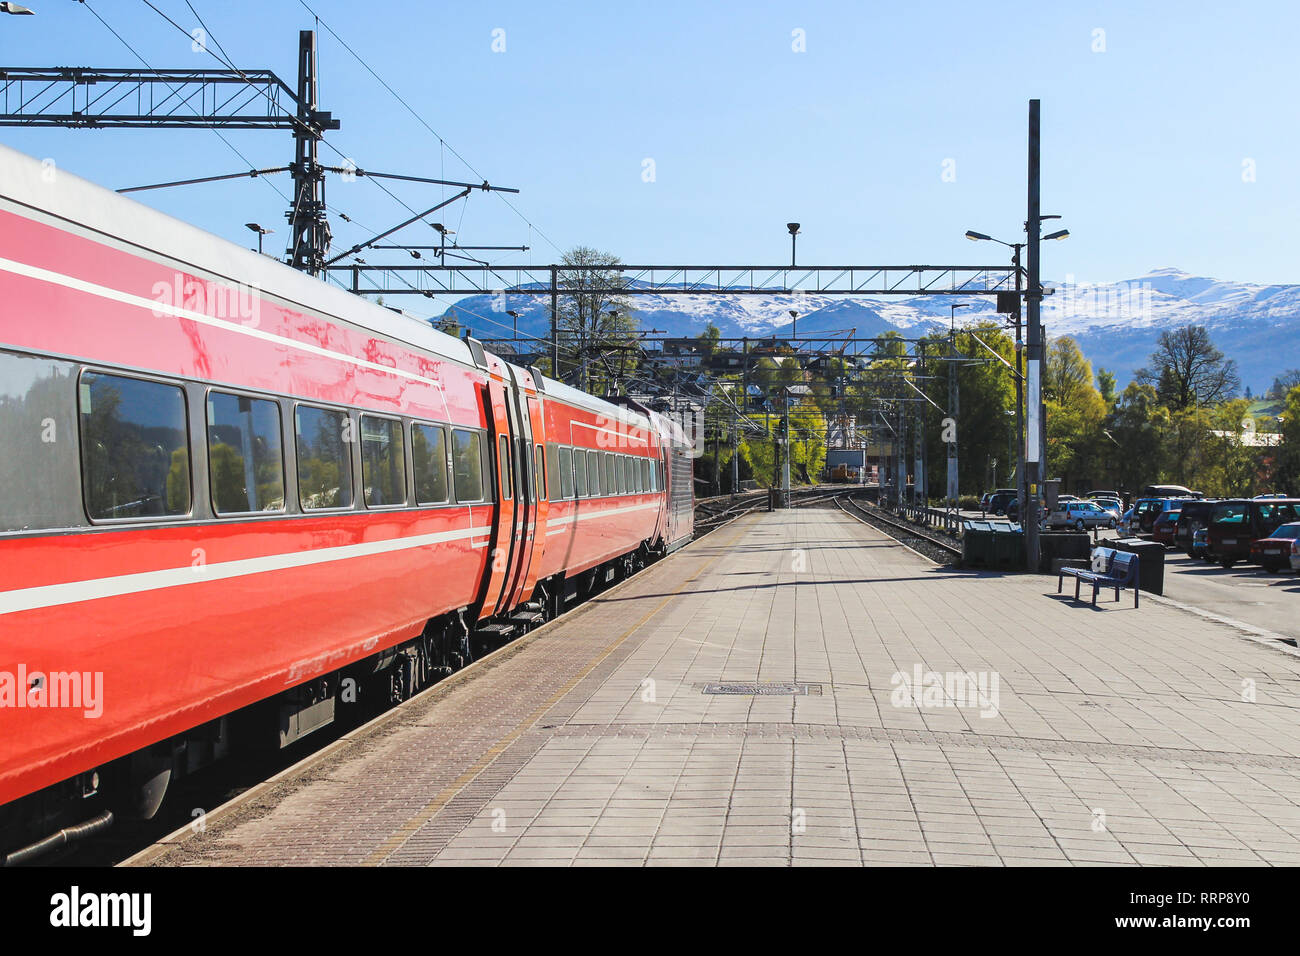 Red train has pulled into the station, Voss, Norway - Stock Image